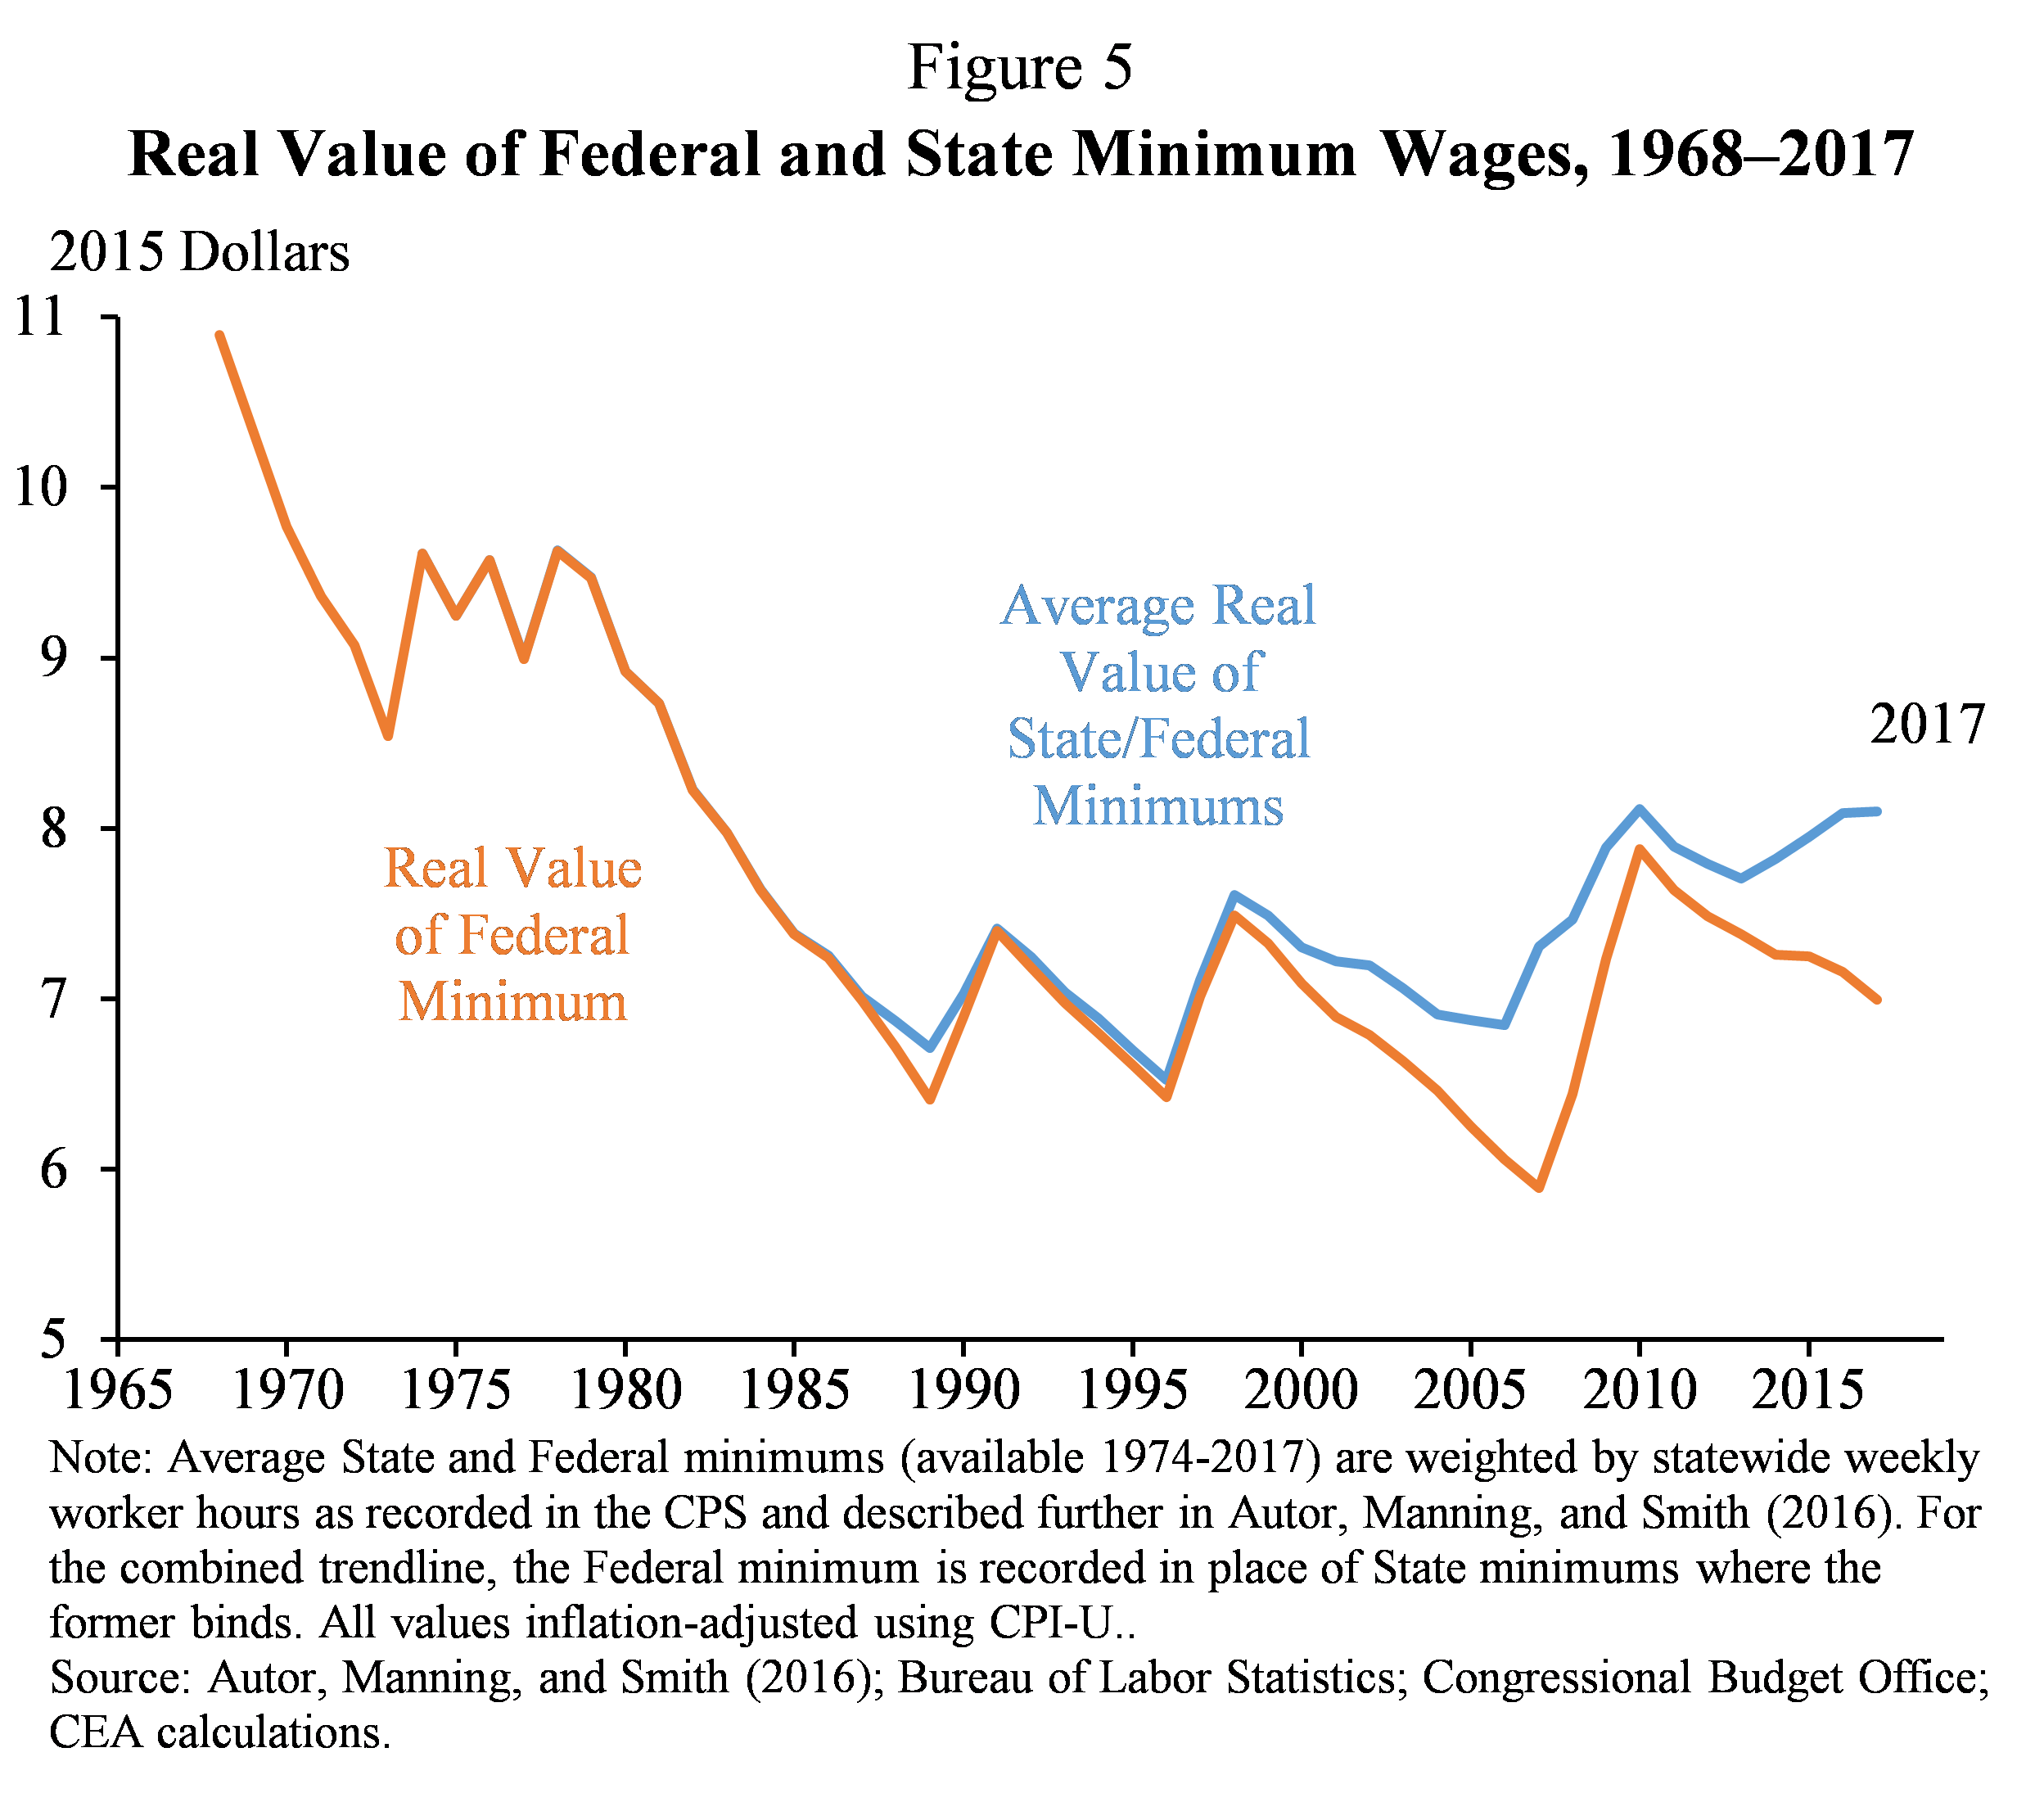 Figure 5.  Real Value of Federal and State Minimum Wages, 1968-2017